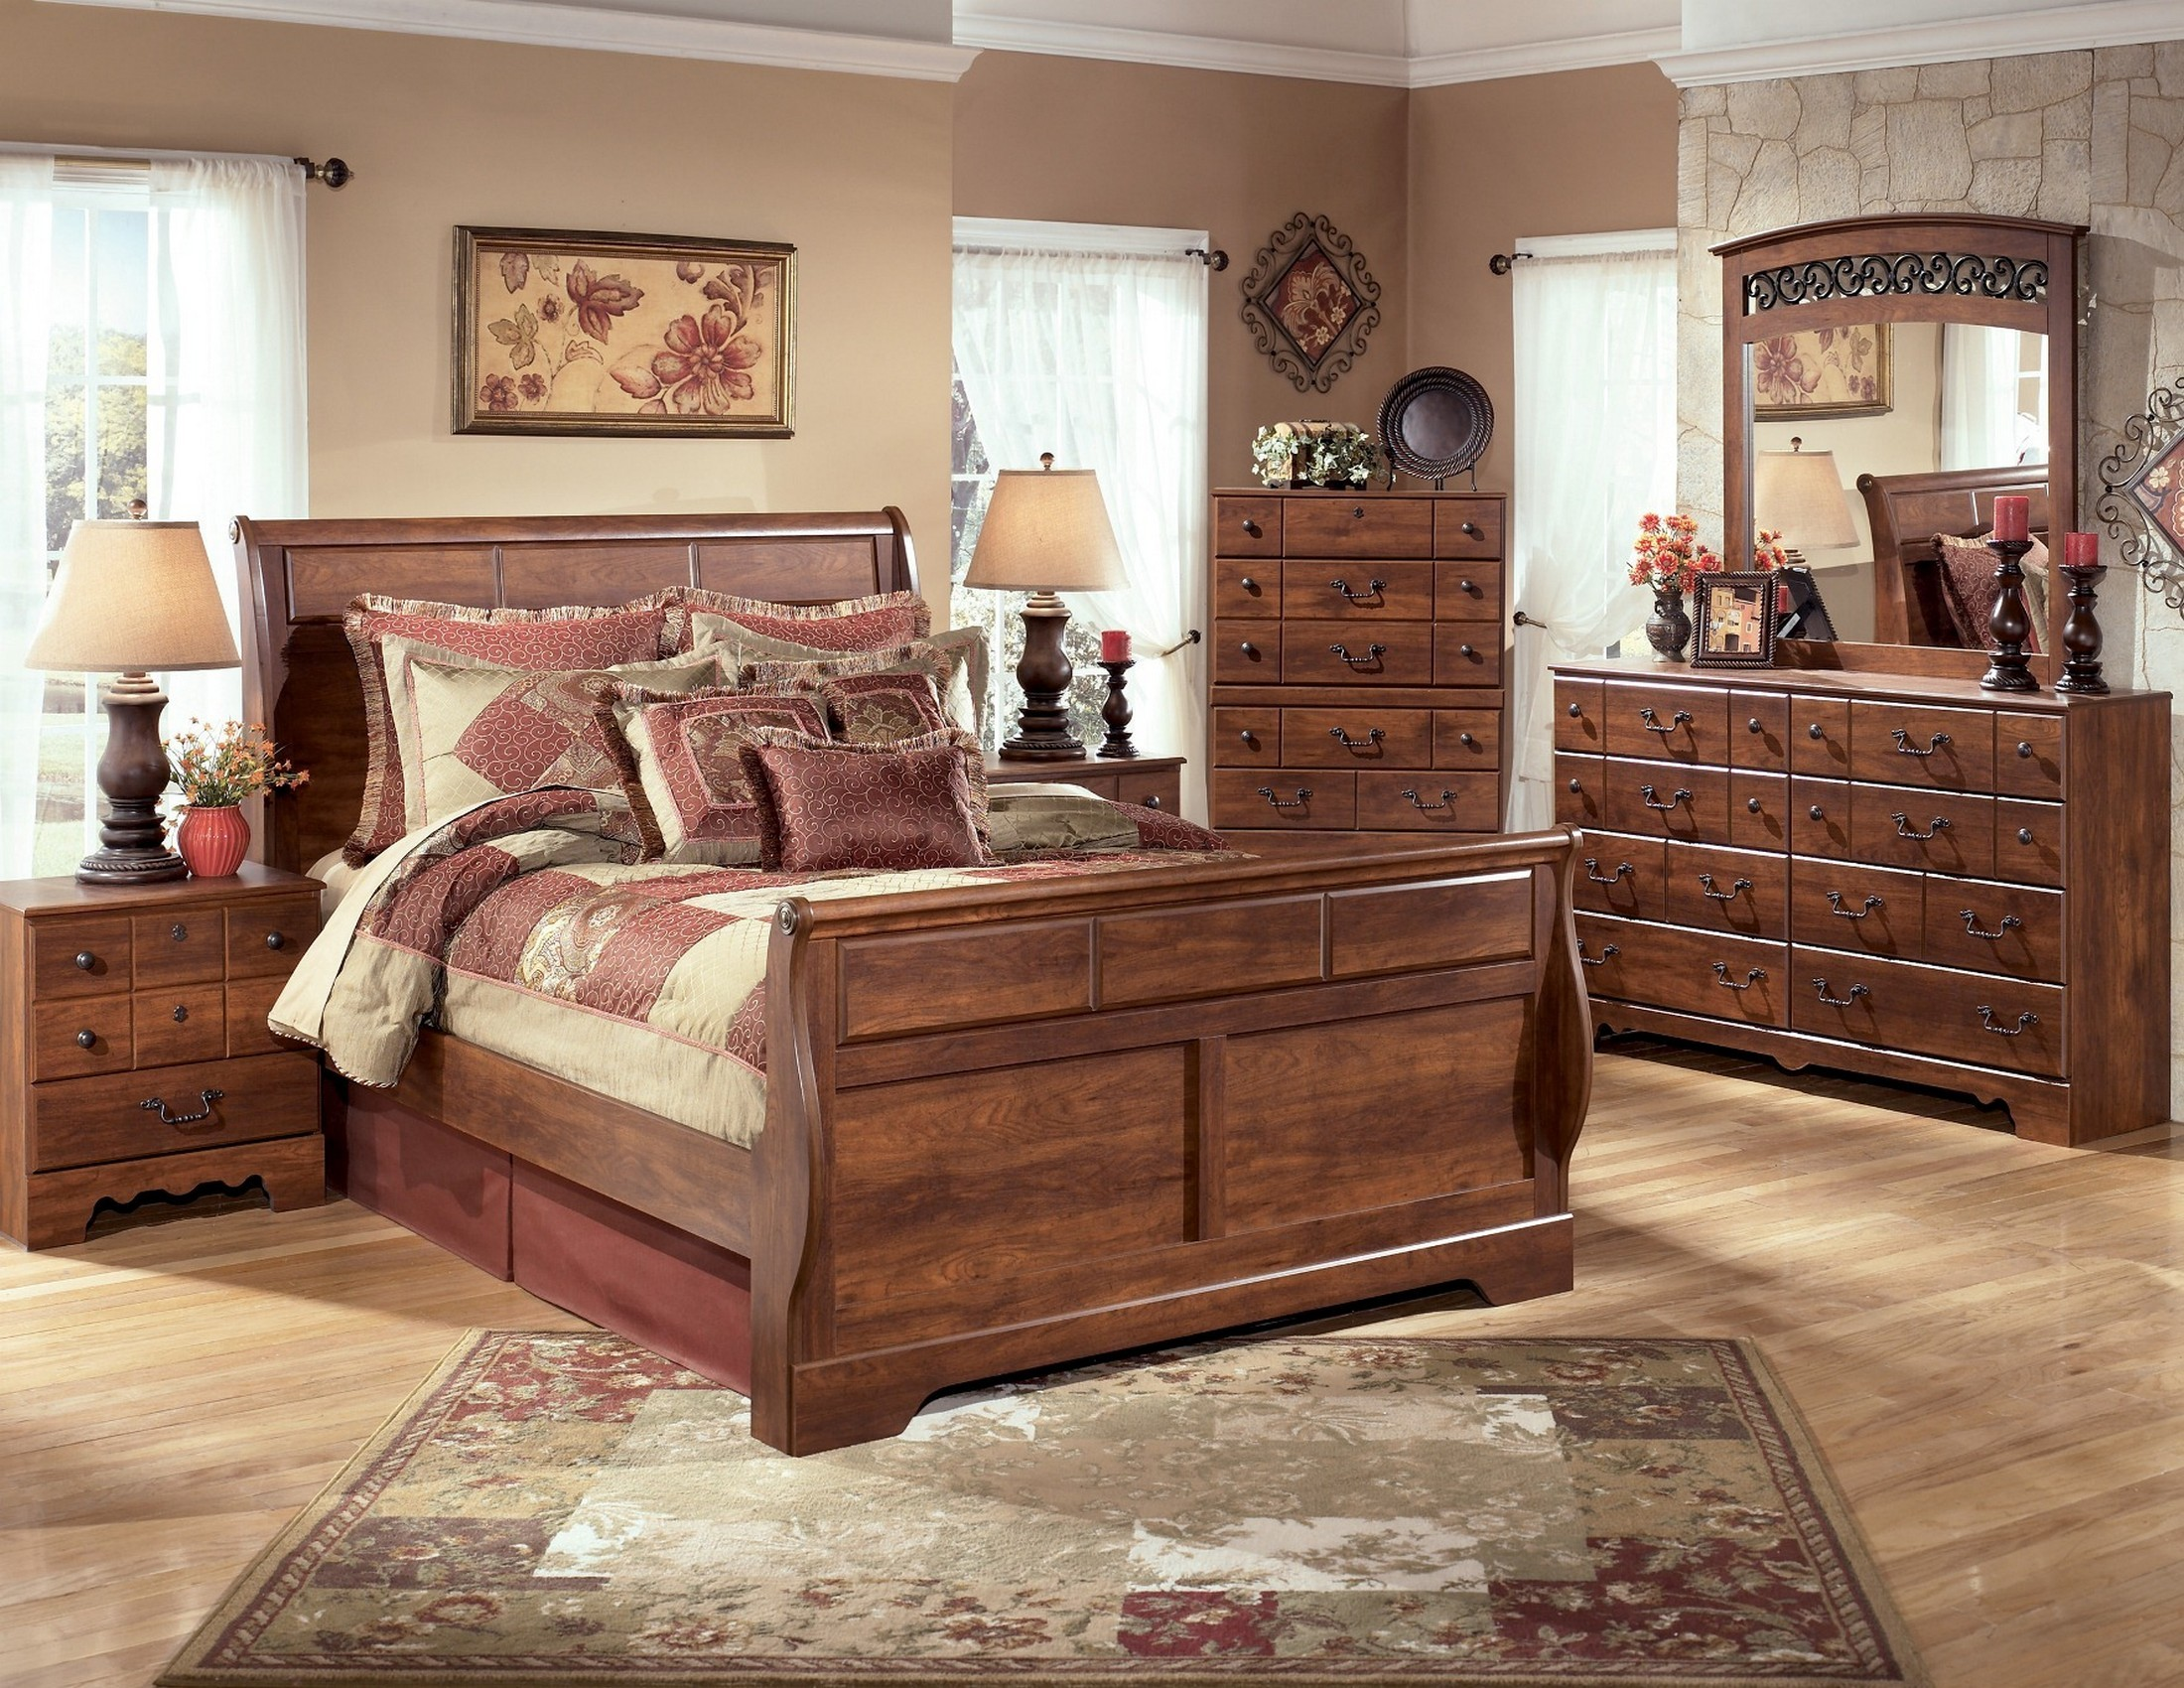 Timberline Sleigh Bedroom Set from Ashley (B258-SL) | Coleman ...